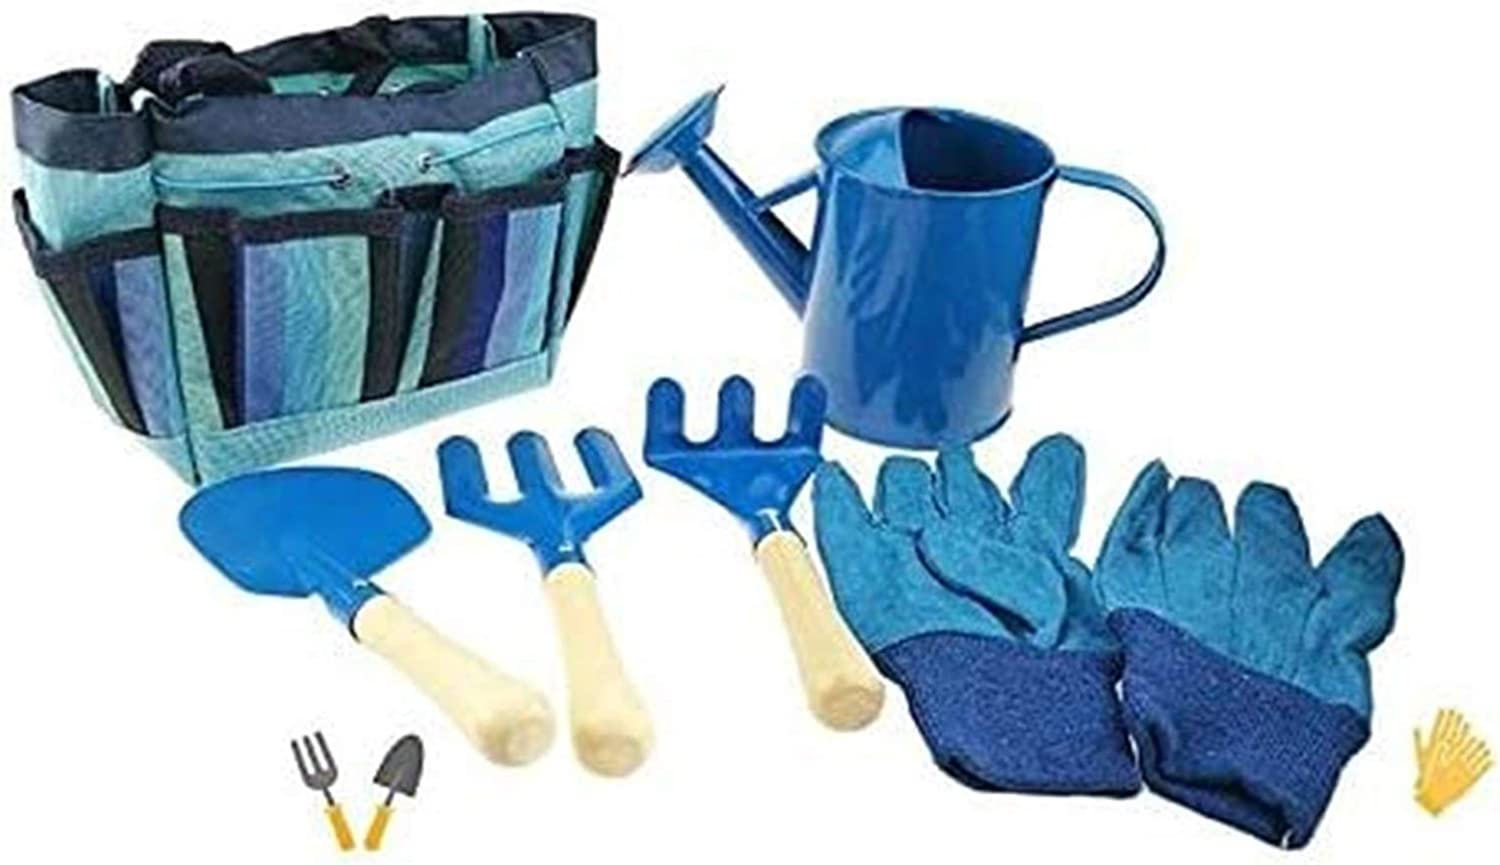 Watering Max 79% OFF Cans Gardening Tool Set Includes Kids Children Glov price for